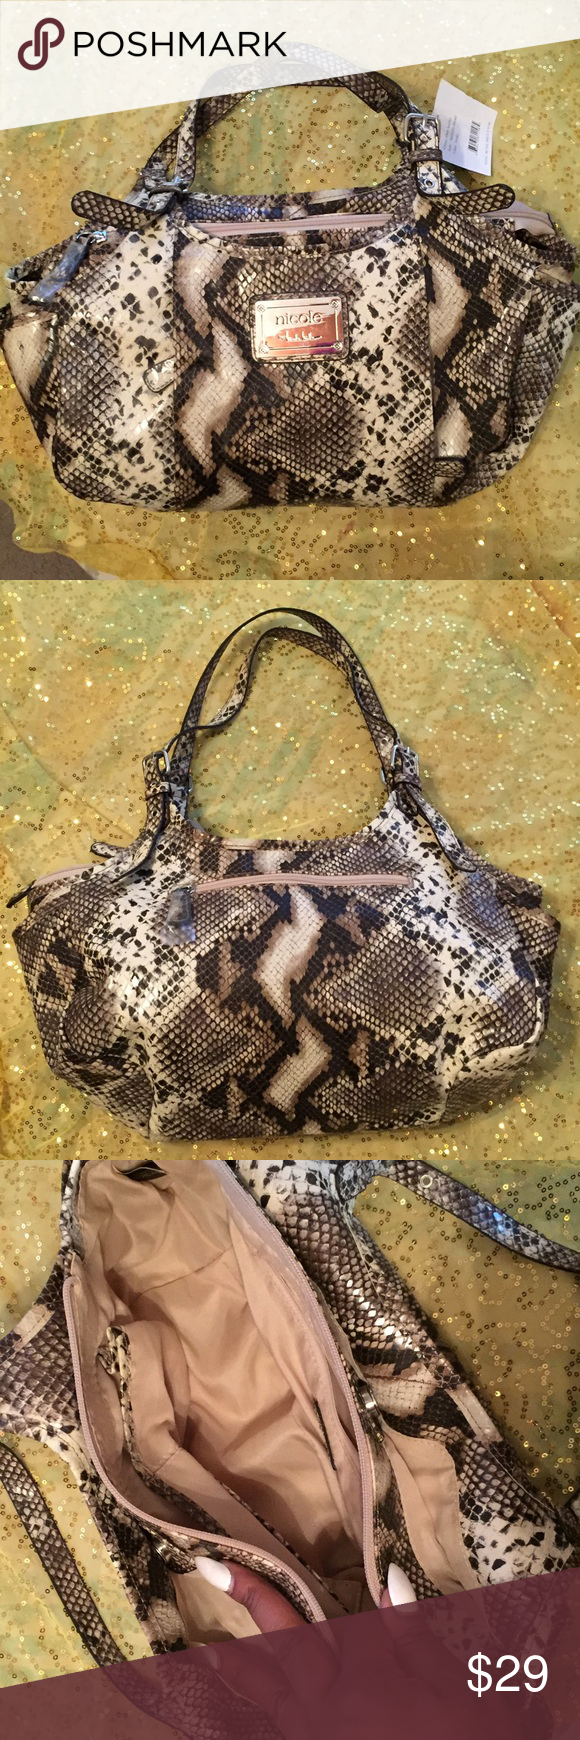 Nicole Miller Snake Print Purse Brand New, $70 value Multiple pockets and sections Zips close Nicole Miller Bags Shoulder Bags